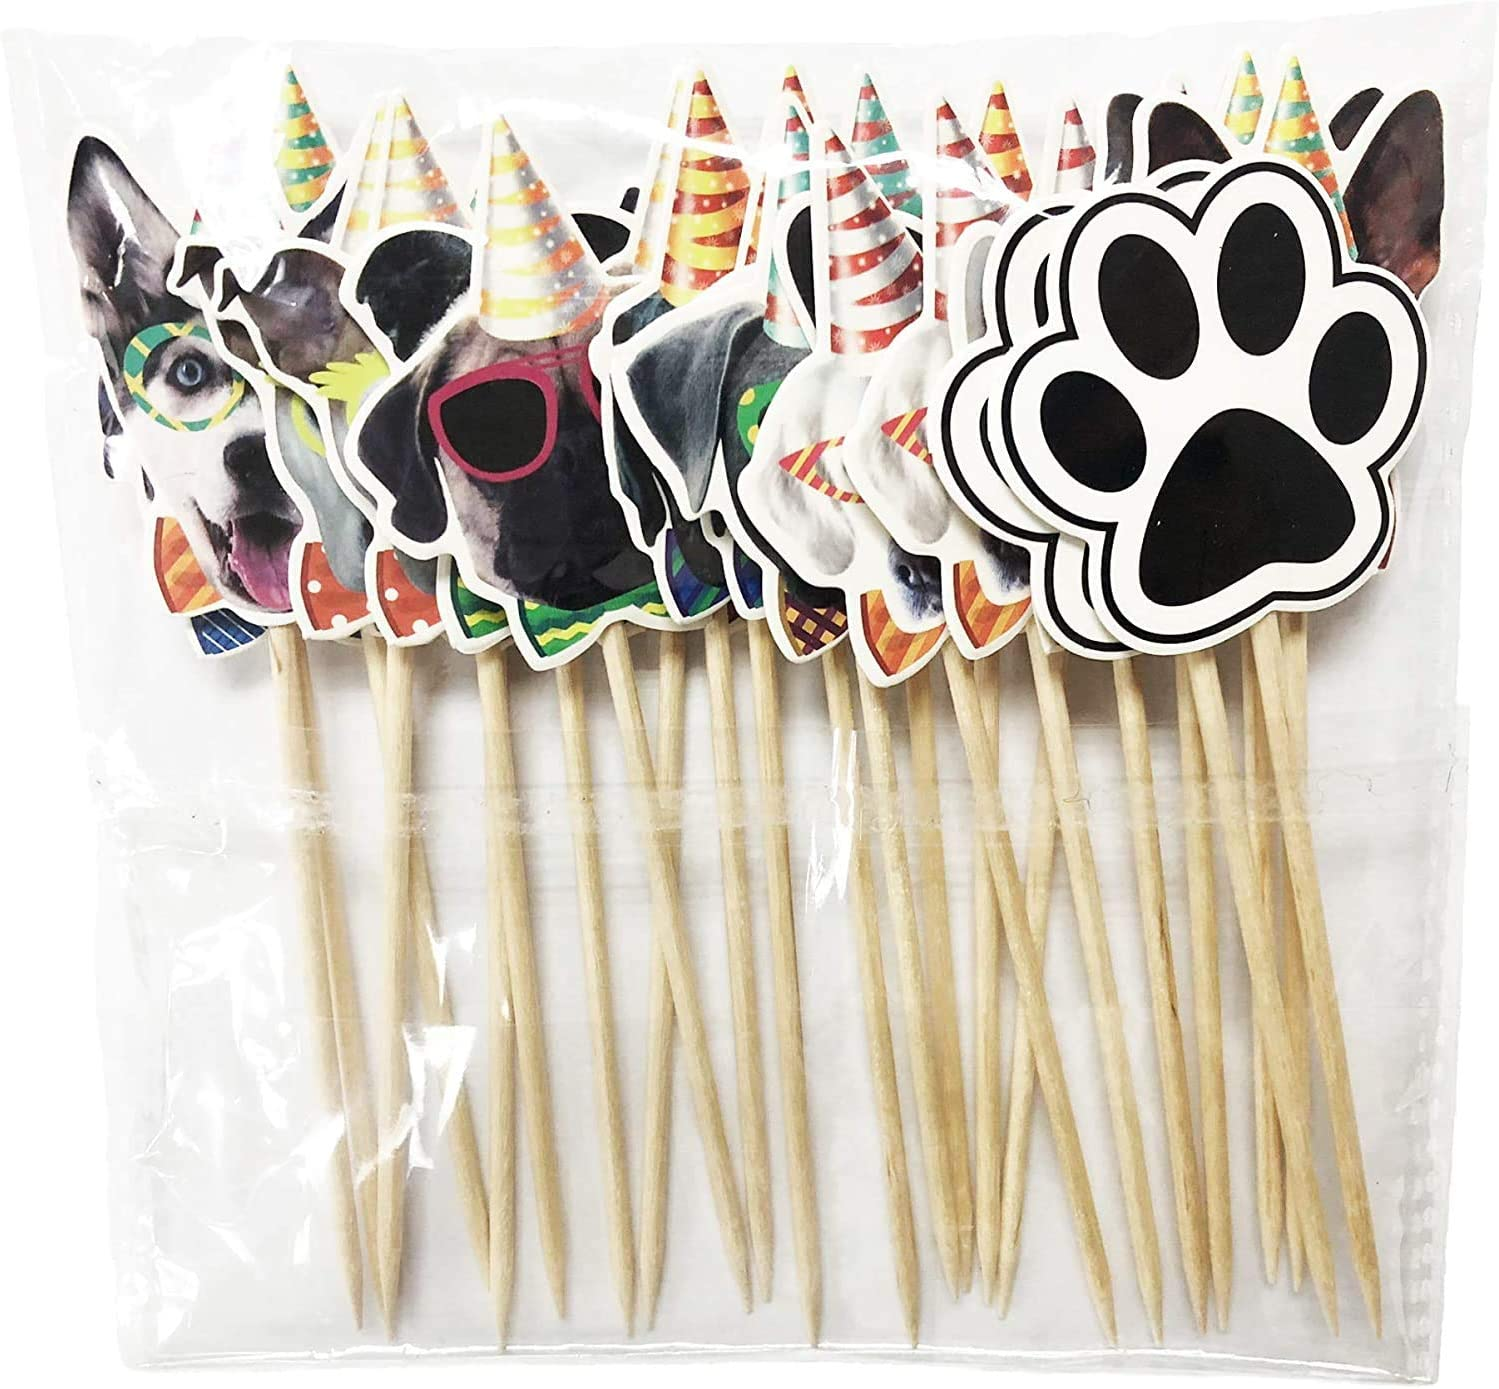 TwoMoon Cake topper cat Cat face Cake decoration Kitten pet theme decorations Childrens pet party Toothpick supplies for baby shower supplies 24PCS group widget